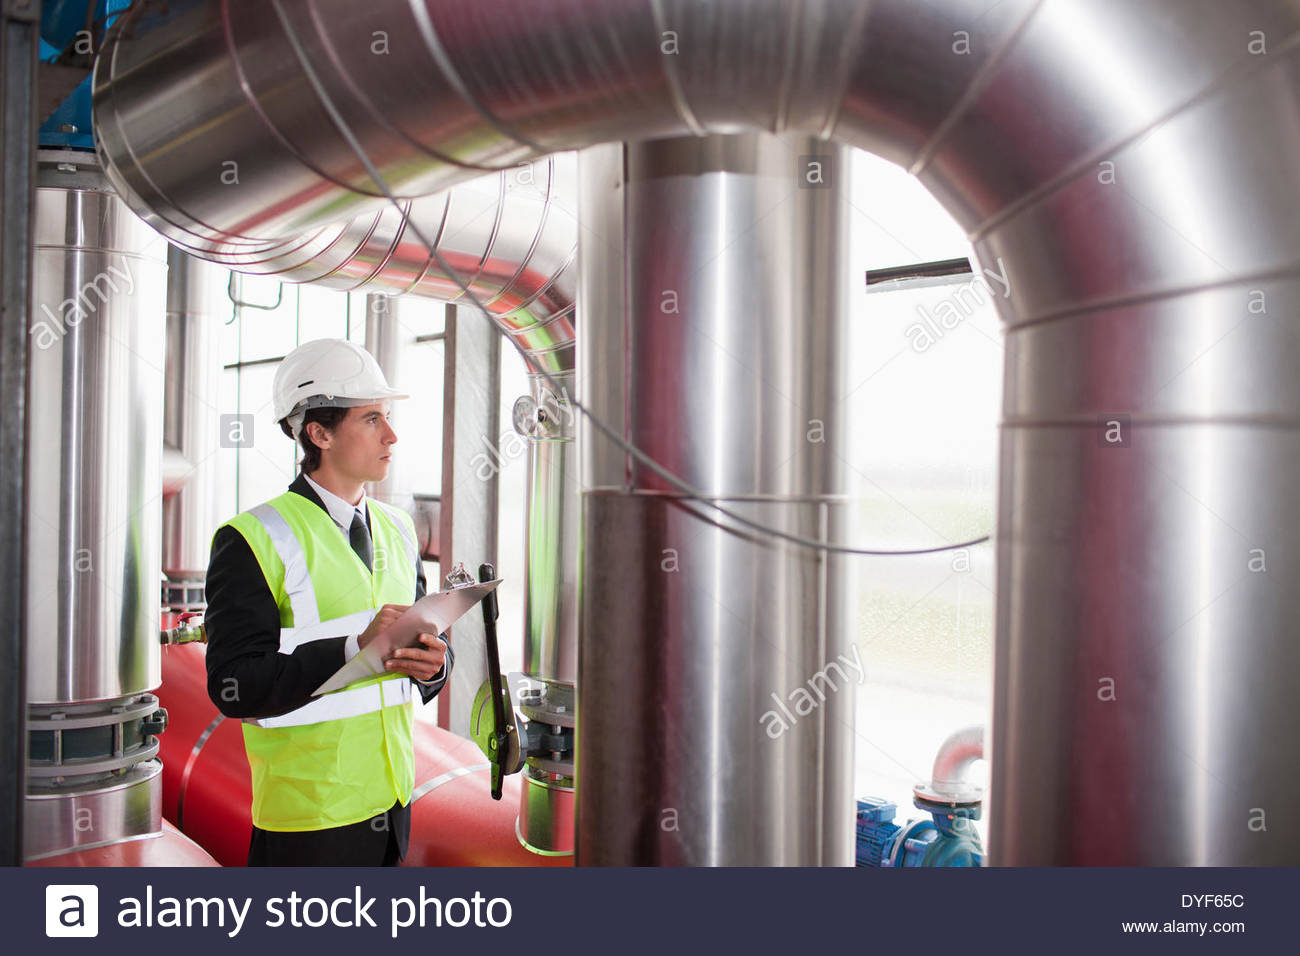 Scientist with clipboard in warehouse - Stock Image